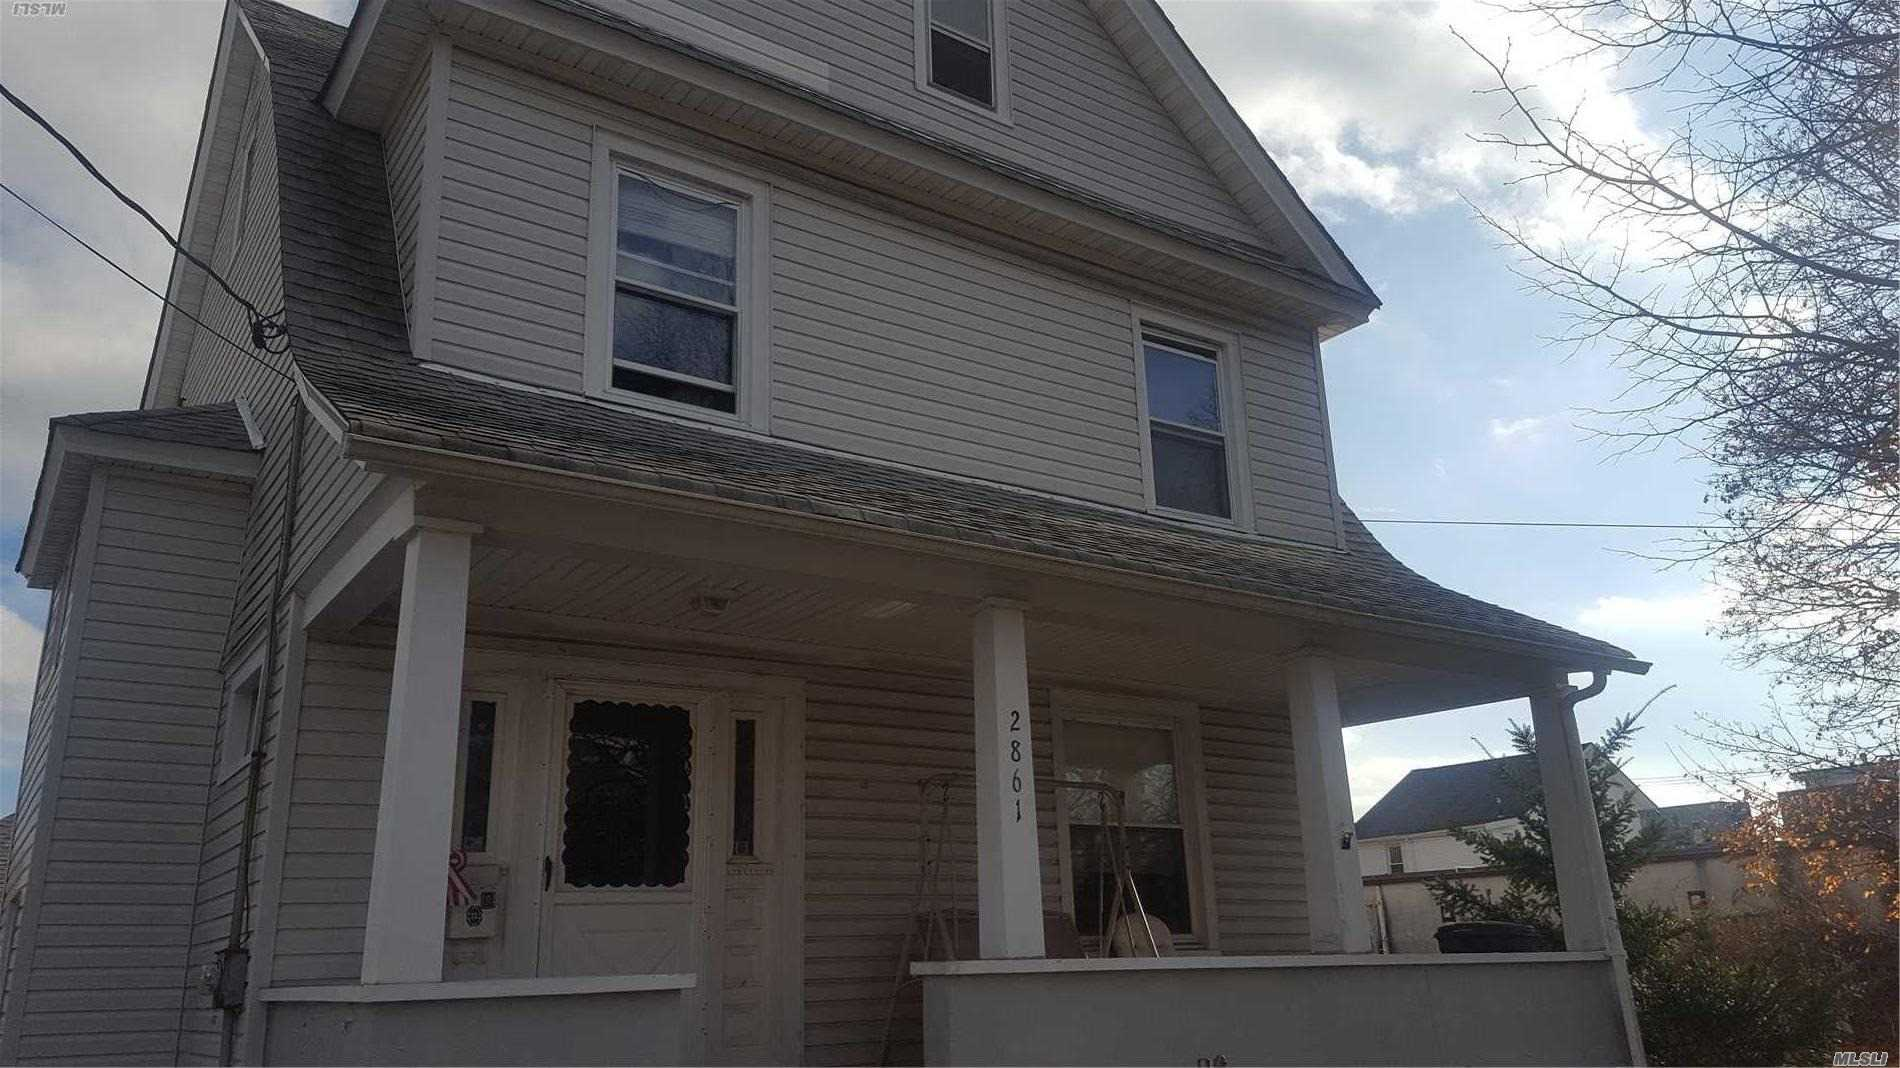 Old World Charm, Huge Property, Front Porch, Recent Roof & Siding. Detached Garage, Full Basement. Not In Flood Zone.     No Insurance Needed! Home Needs Tlc,  Priced To Sell. Owners Will Listen To All Offers.